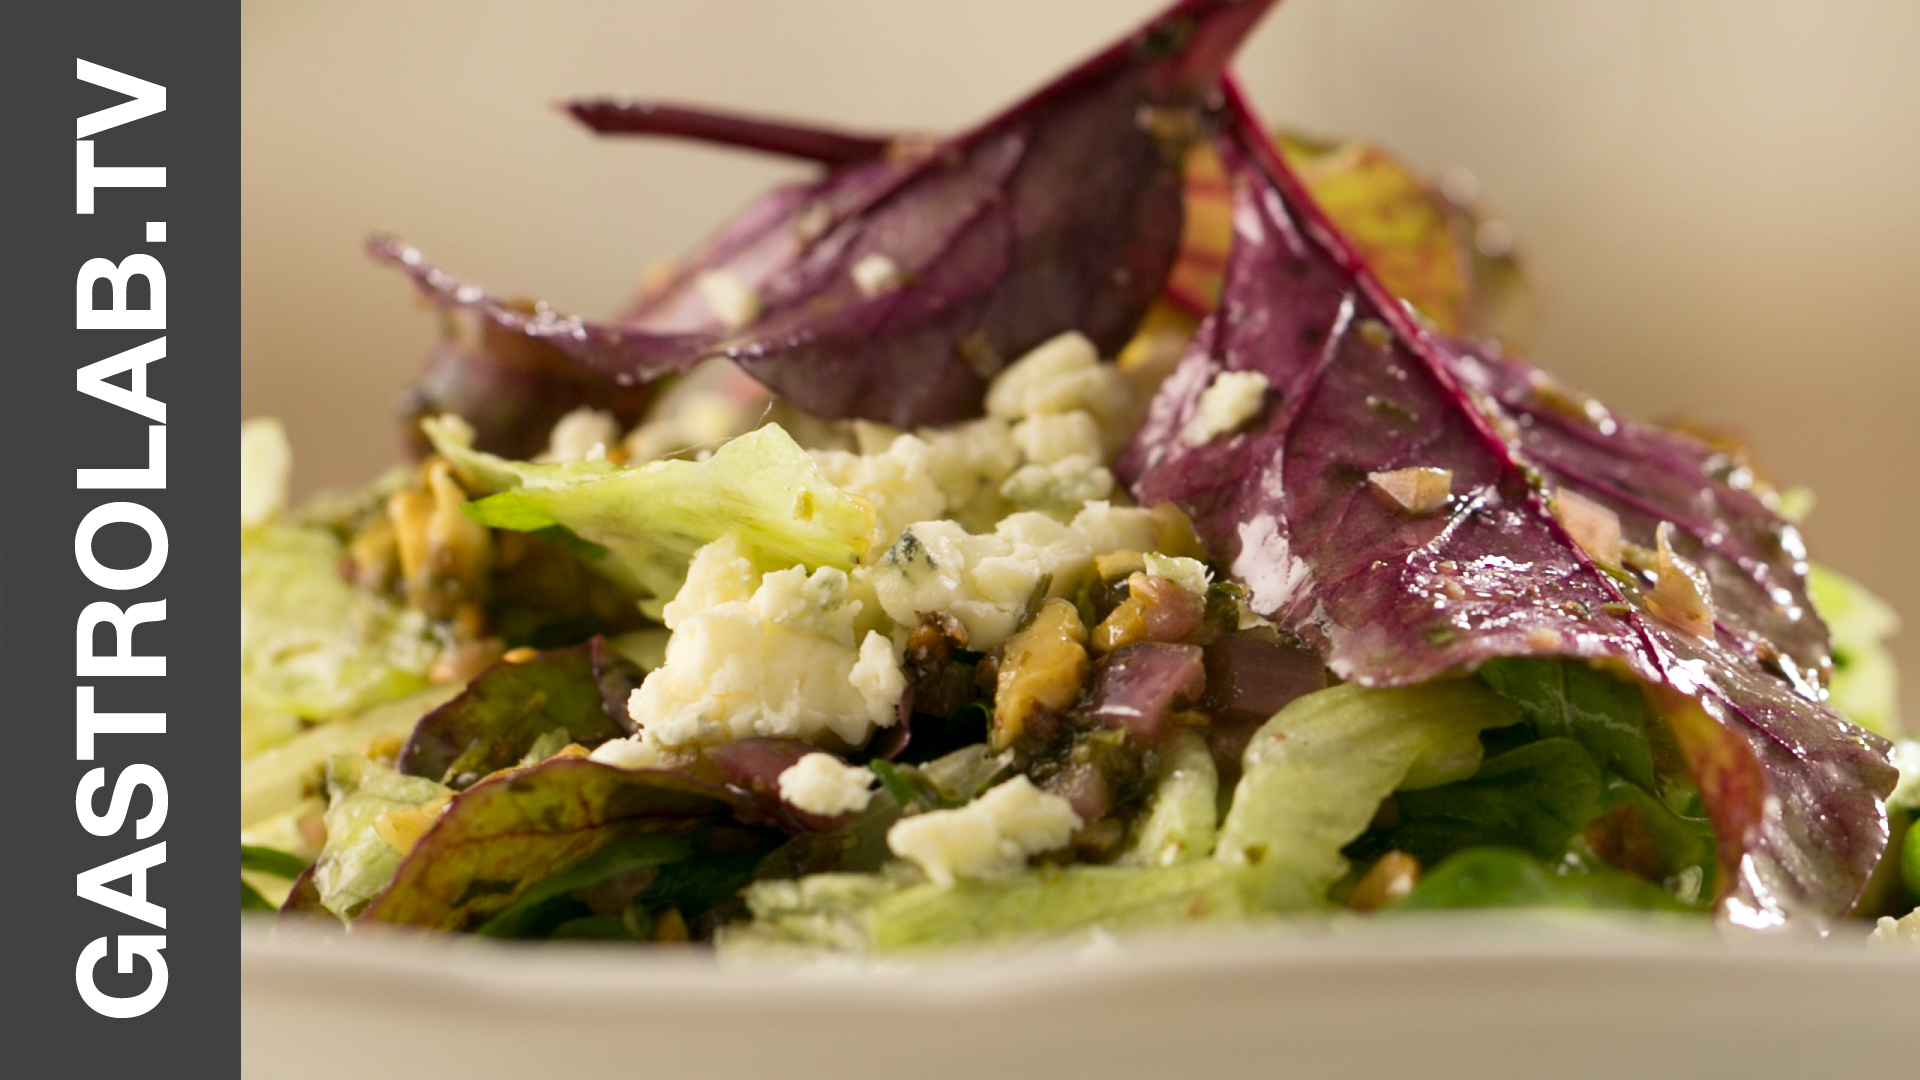 How to Make the Best Mixed Greens Salad With Vinaigrette and Blue Cheese